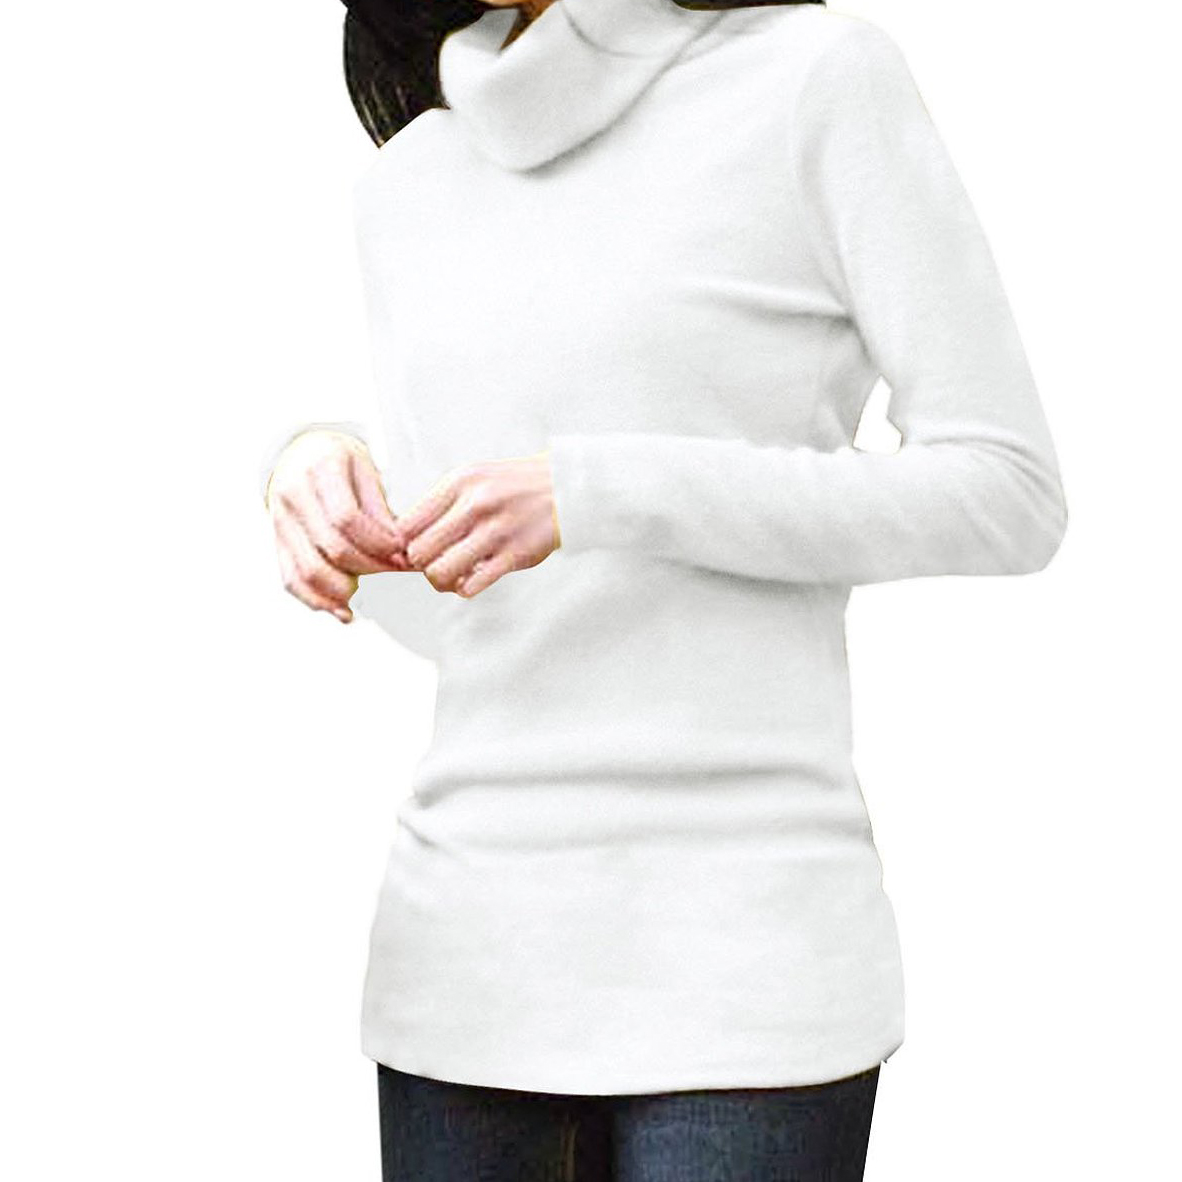 Women turtleneck long sleeve fitted knit shirt stretchy for Womens yellow long sleeve shirt